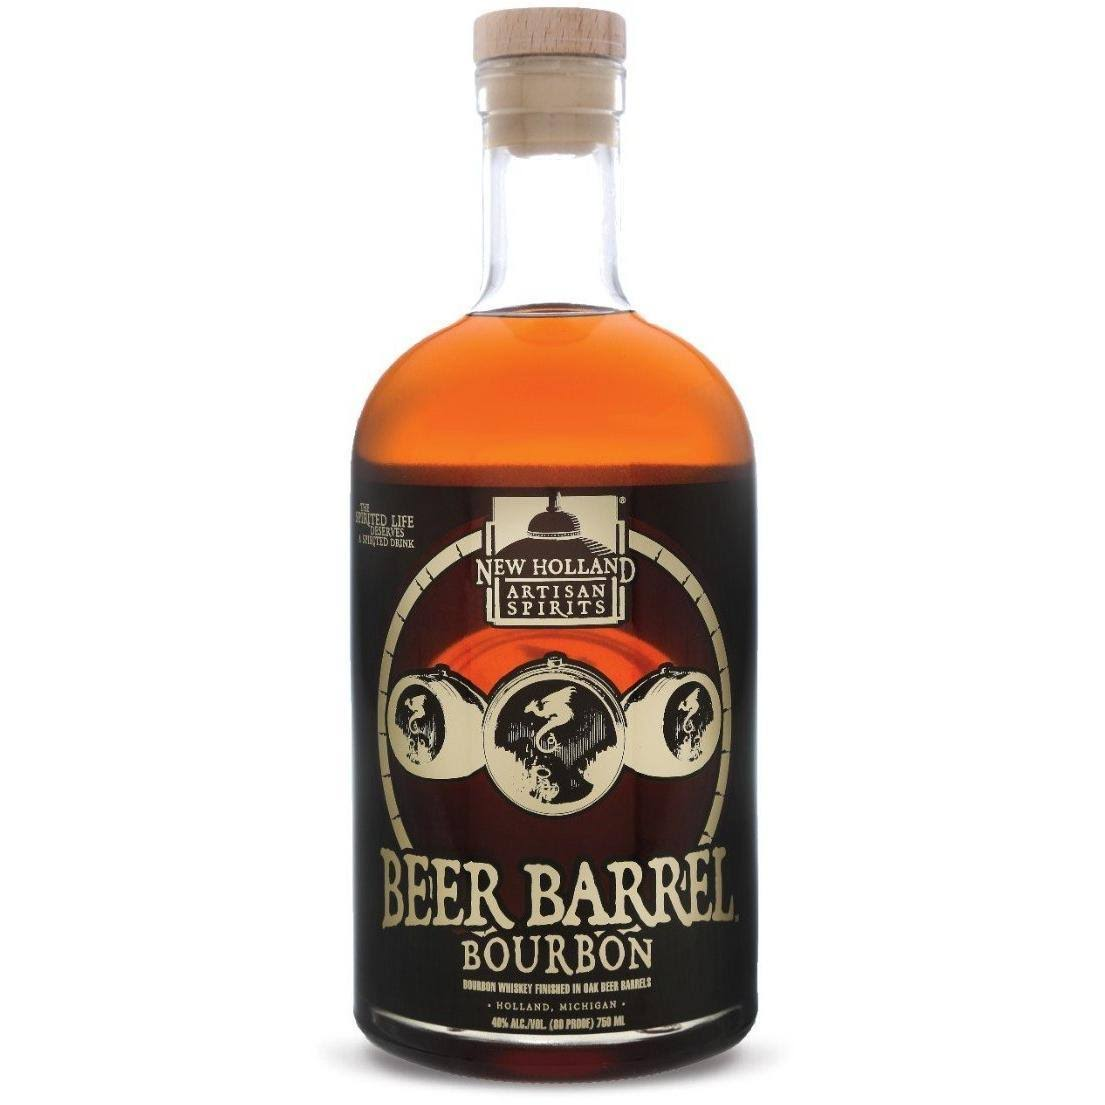 New Holland Beer Barrel Bourbon Whiskey - 750 ml bottle